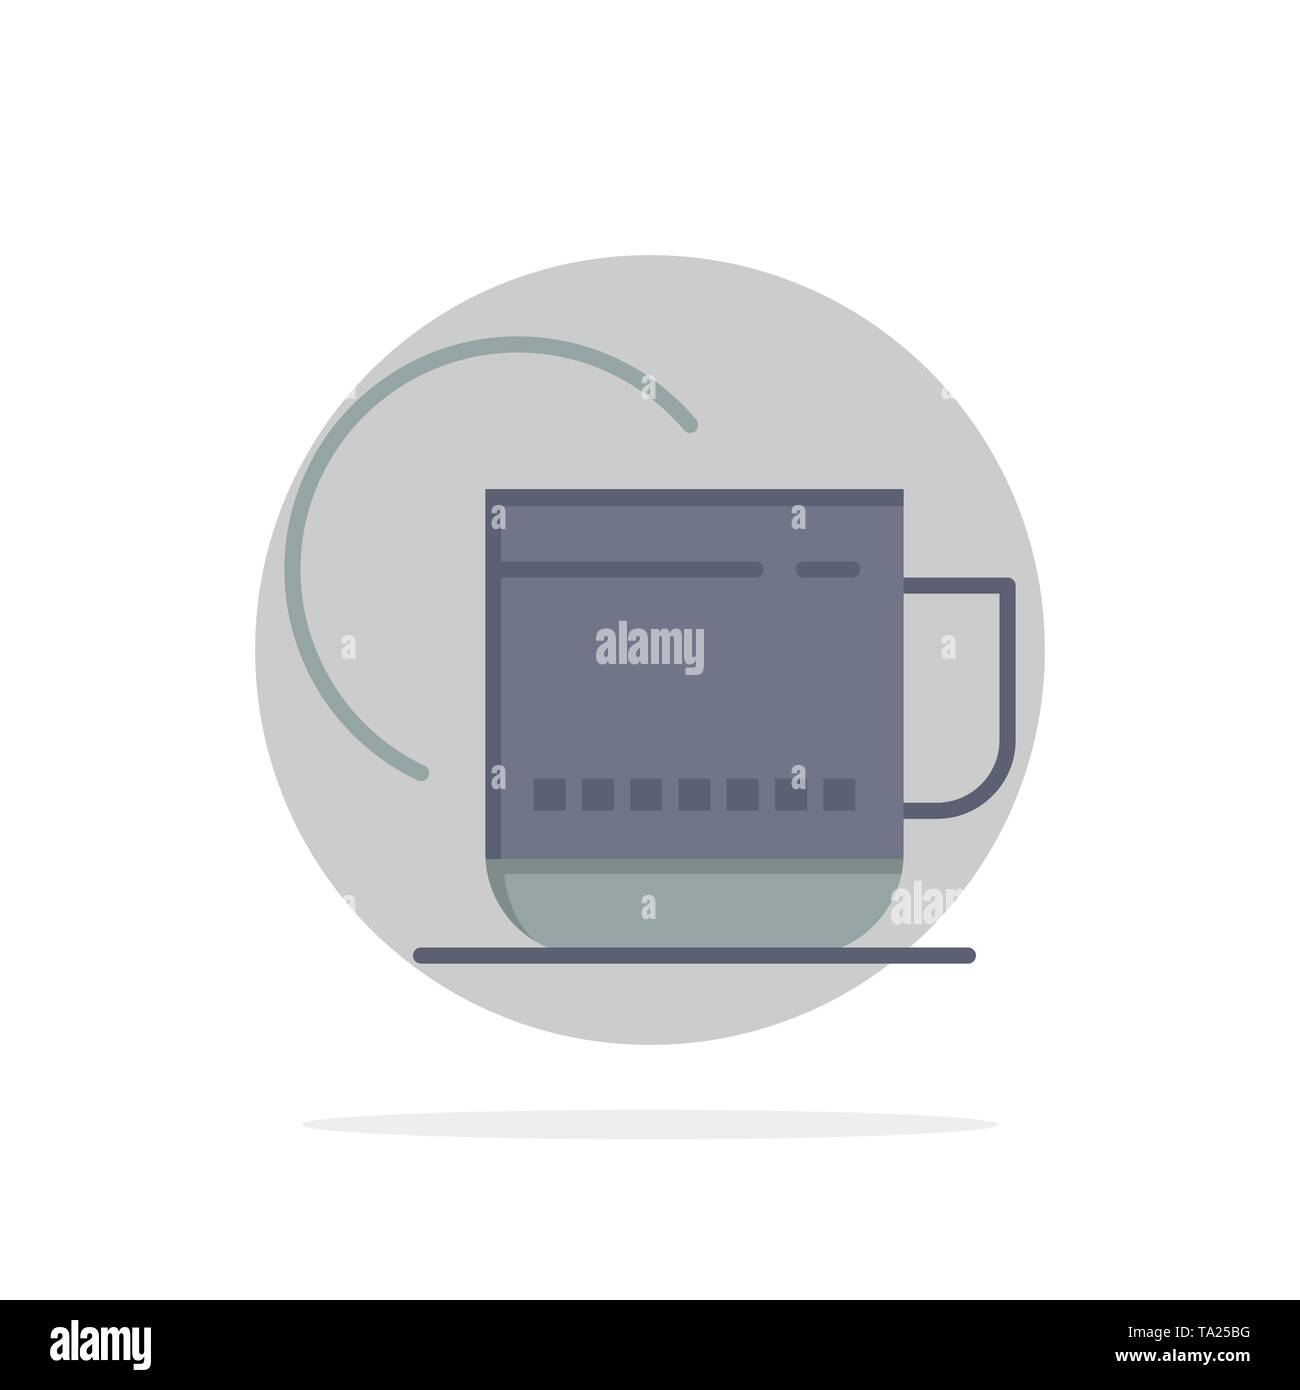 Tea, Hot, Hotel, Service Abstract Circle Background Flat color Icon Stock Vector